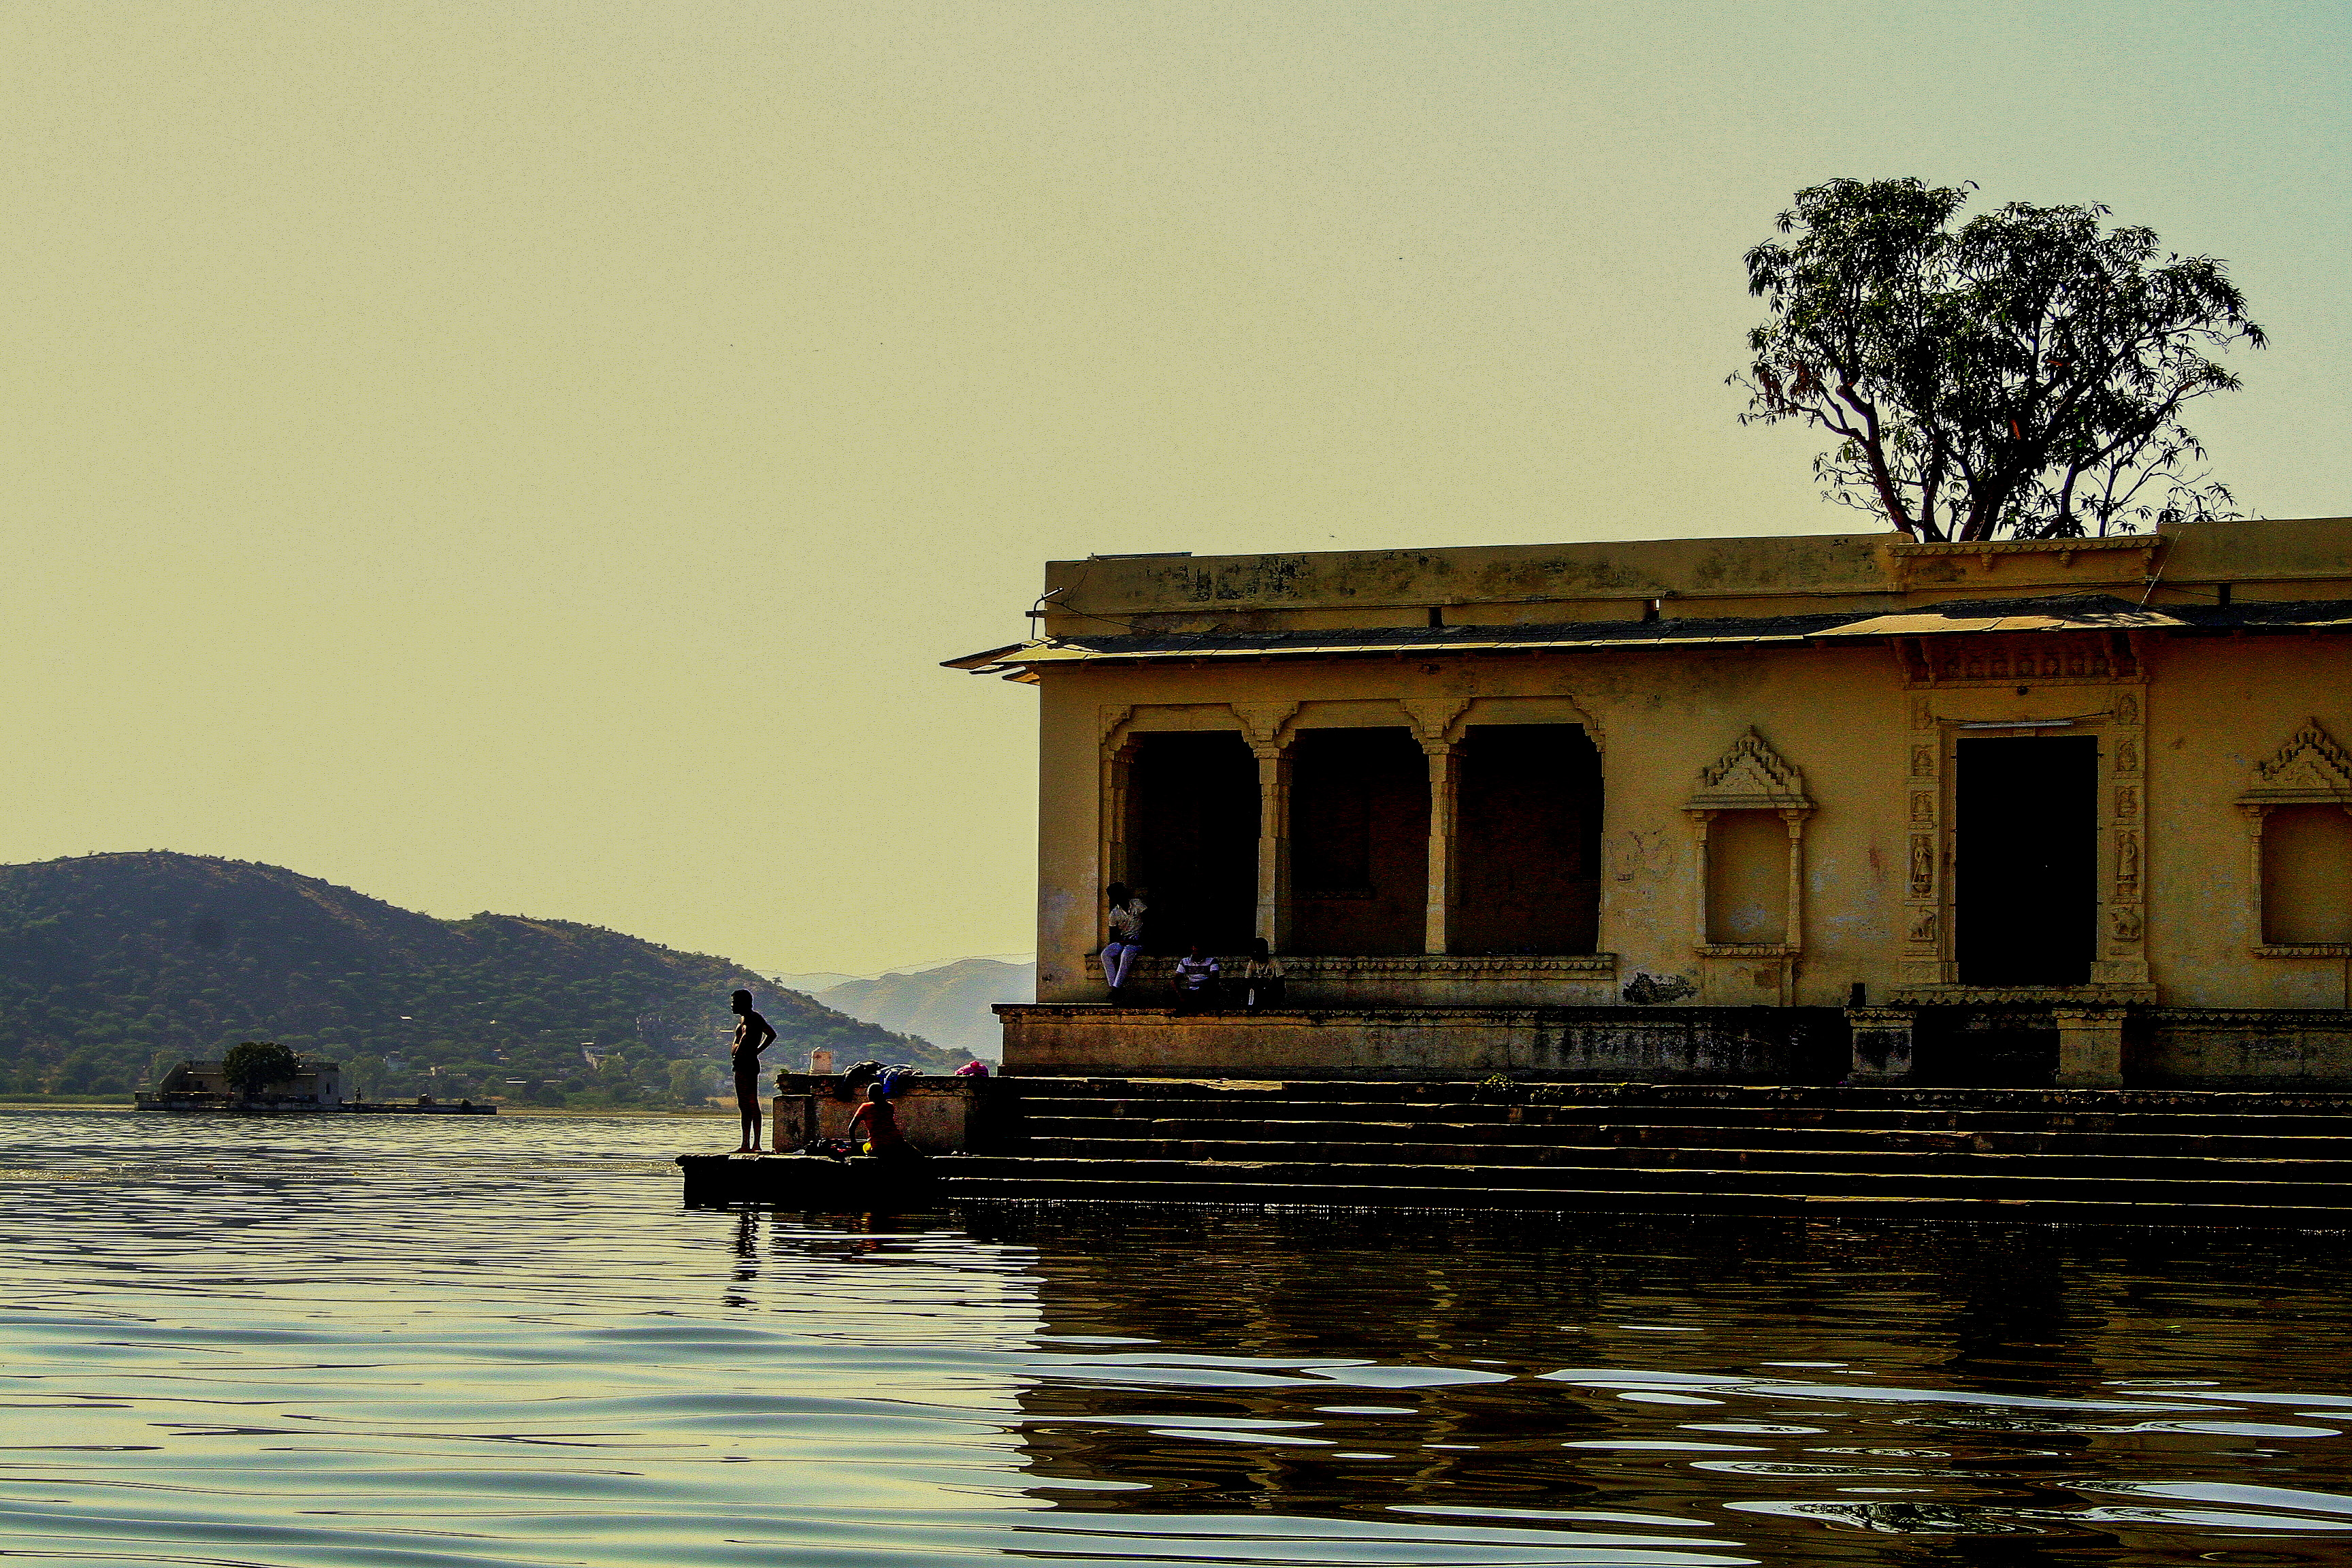 Udaipur, Rajasthan. Photos by Surbhee Grover